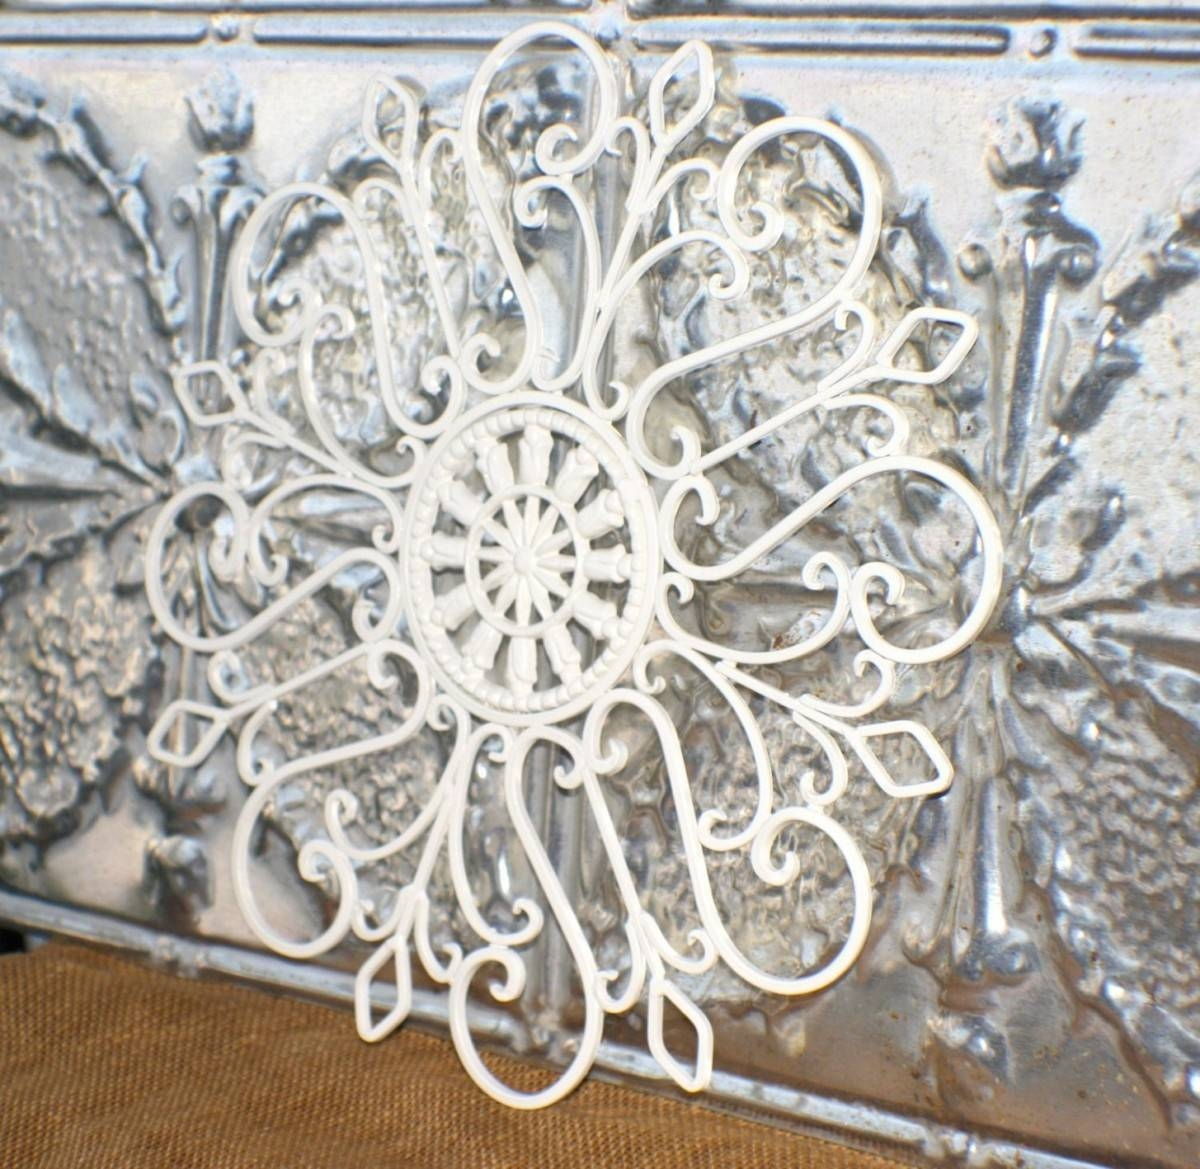 Awesome Metal Wall Art Decor And Sculptures Pertaining To Most Current Metal Wall Art Decor And Sculptures (View 8 of 20)